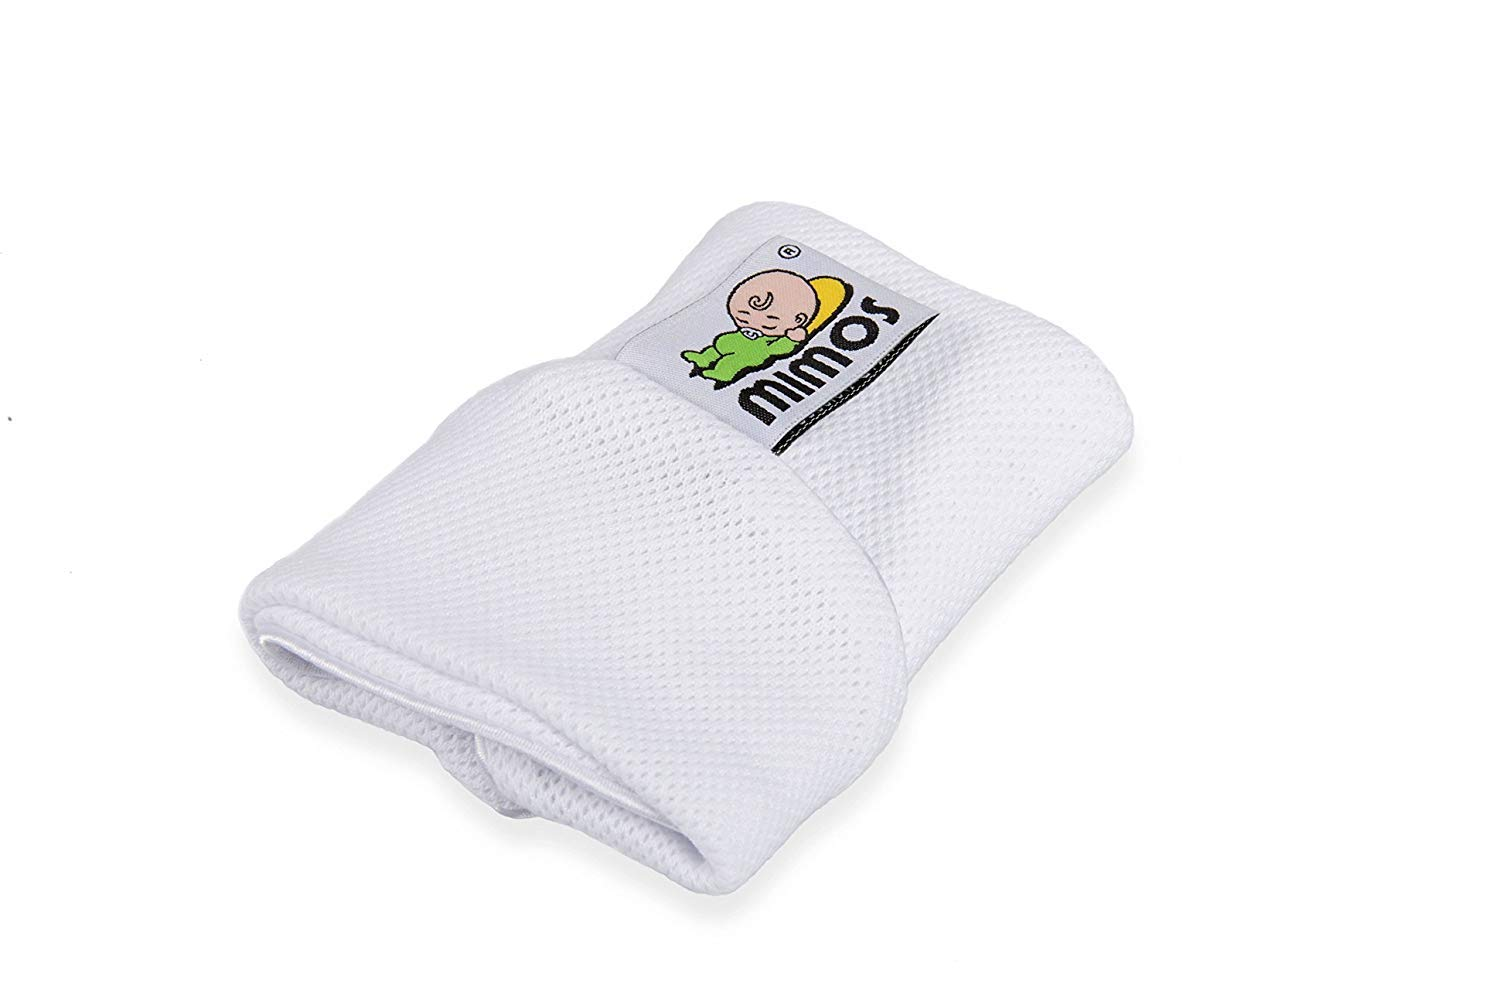 Size S - 2 Items Mimos Pillow Bundle Pillow and White Cover European CE Approved   Clinically Proven Effective for Flat Head Prevention Anti-Suffocation